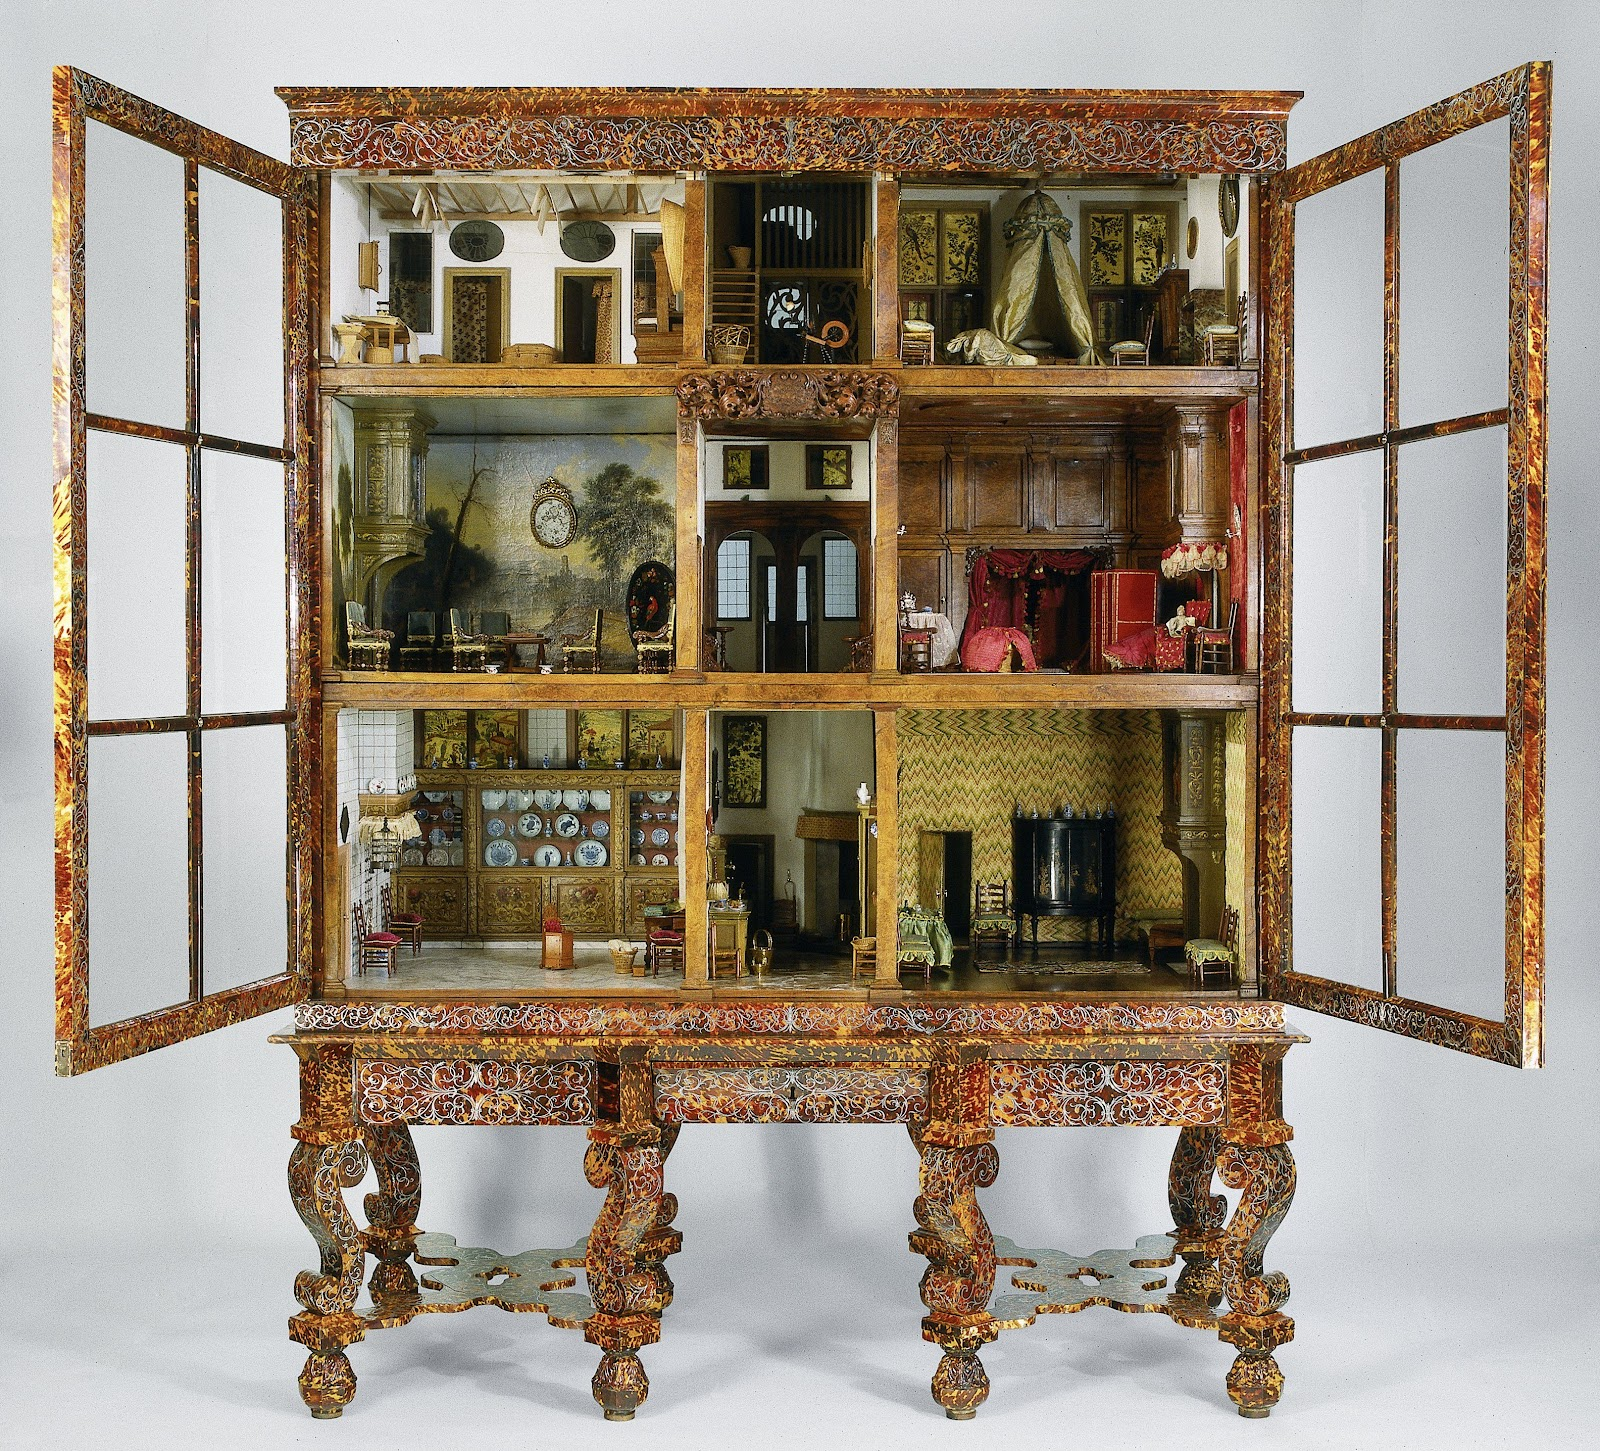 So famous they're not really hidden gems, the Rijksmuseum's Dolls' Houses are more like museum highlights.